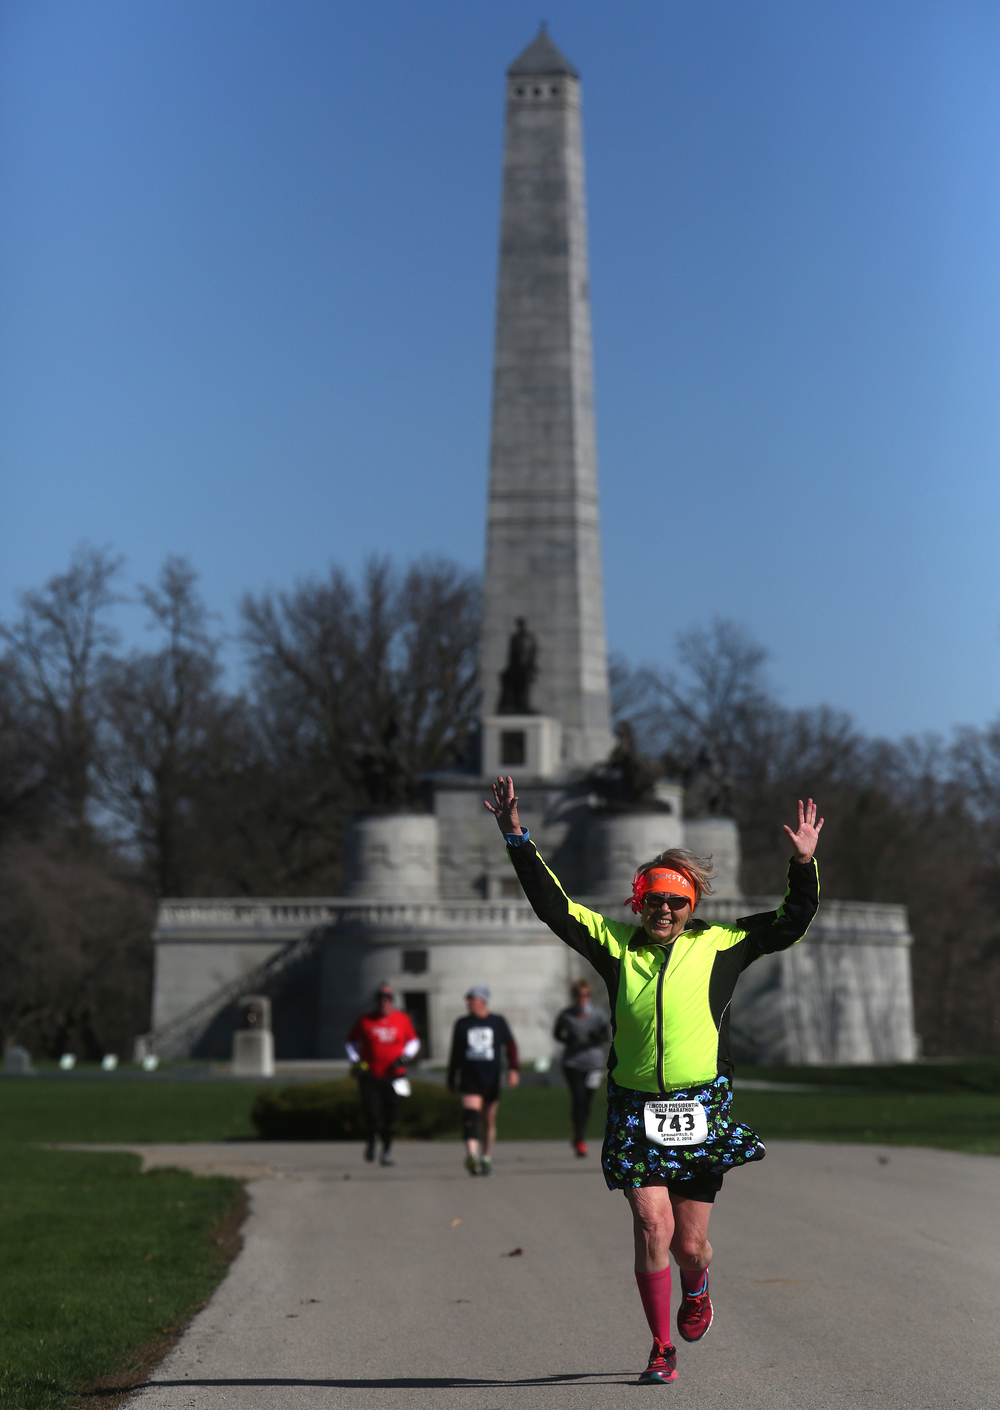 With the Lincoln Tomb in Oakridge Cemetery as a backdrop, runner Diane Kellenburger of Portage, IN makes her way towards the finish line Saturday. David Spencer/The State Journal Register